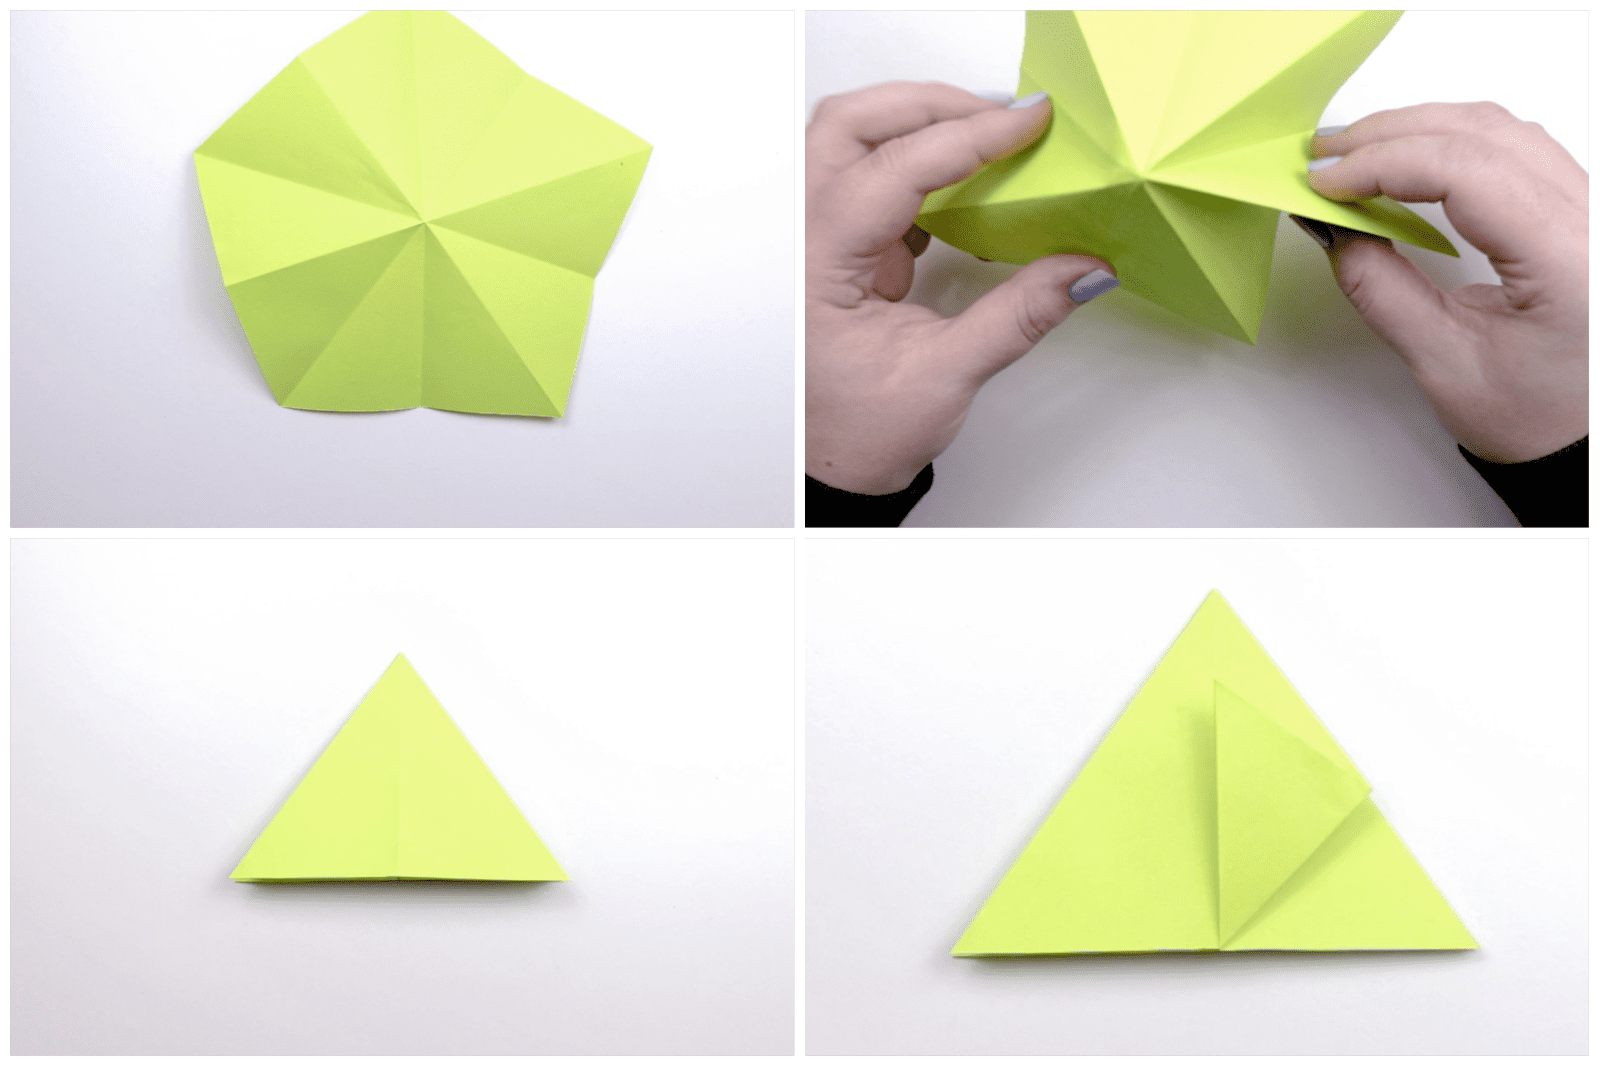 Fold the paper so it forms a triangle shape.